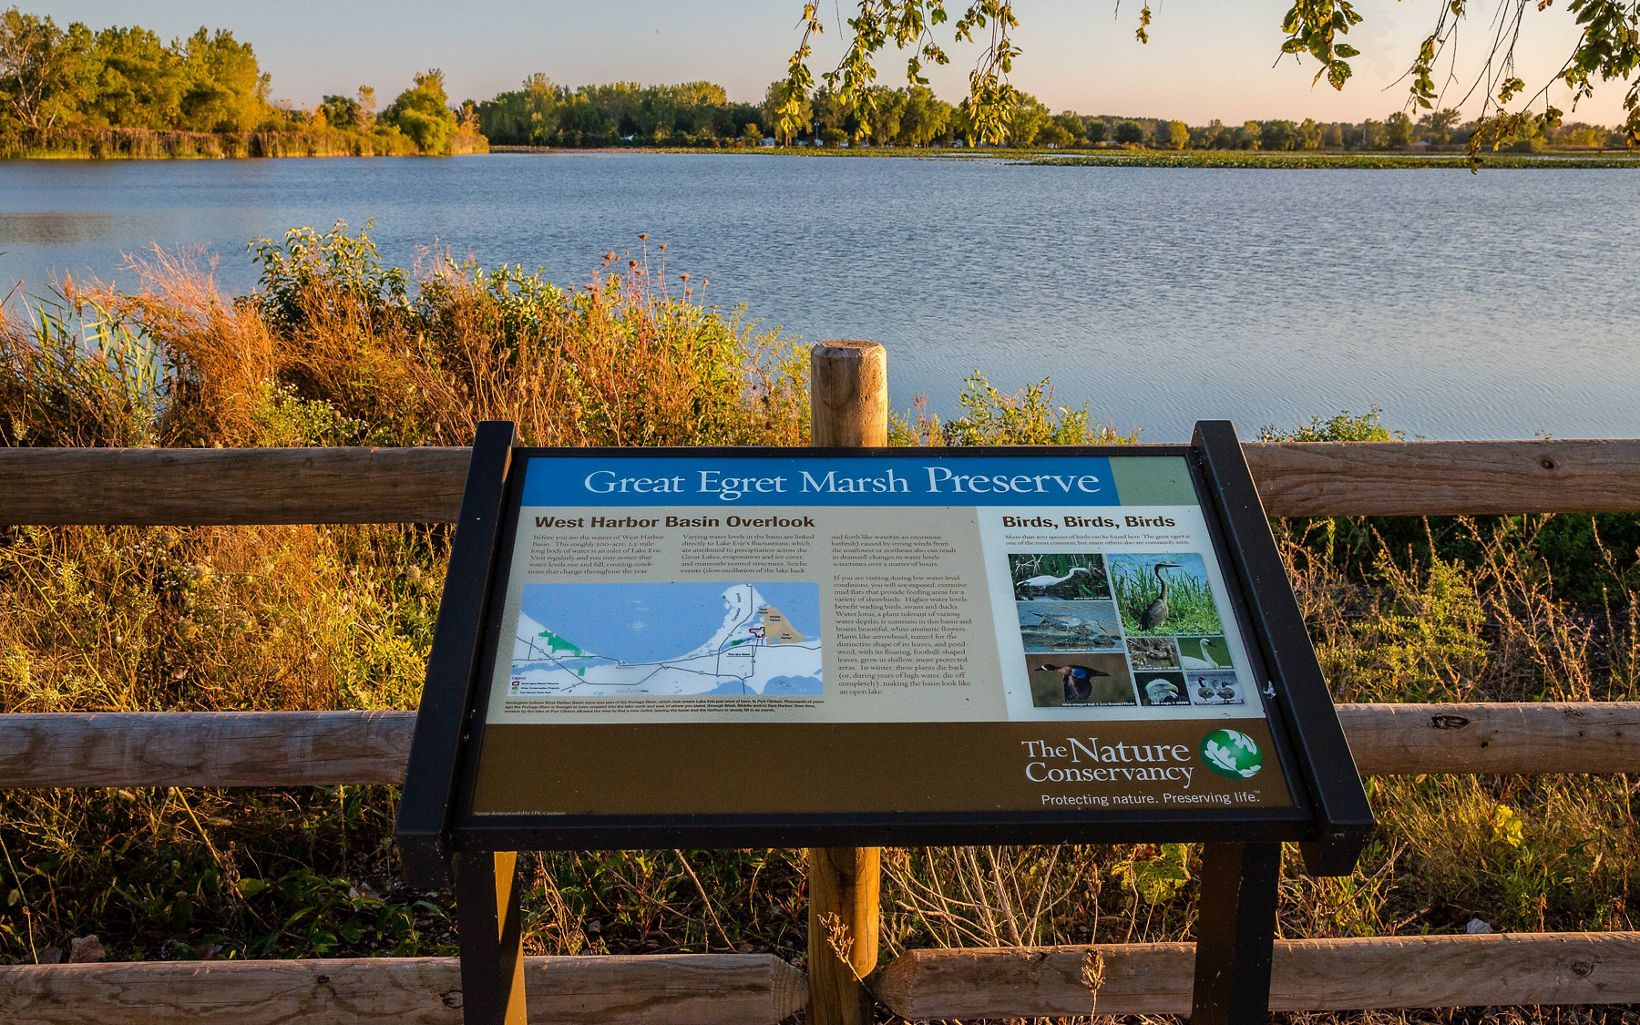 Interpretive signage gives the natural history of the preserve and explains the importance of wetlands.  Learn about the plants and animals that benefit from this preserve.